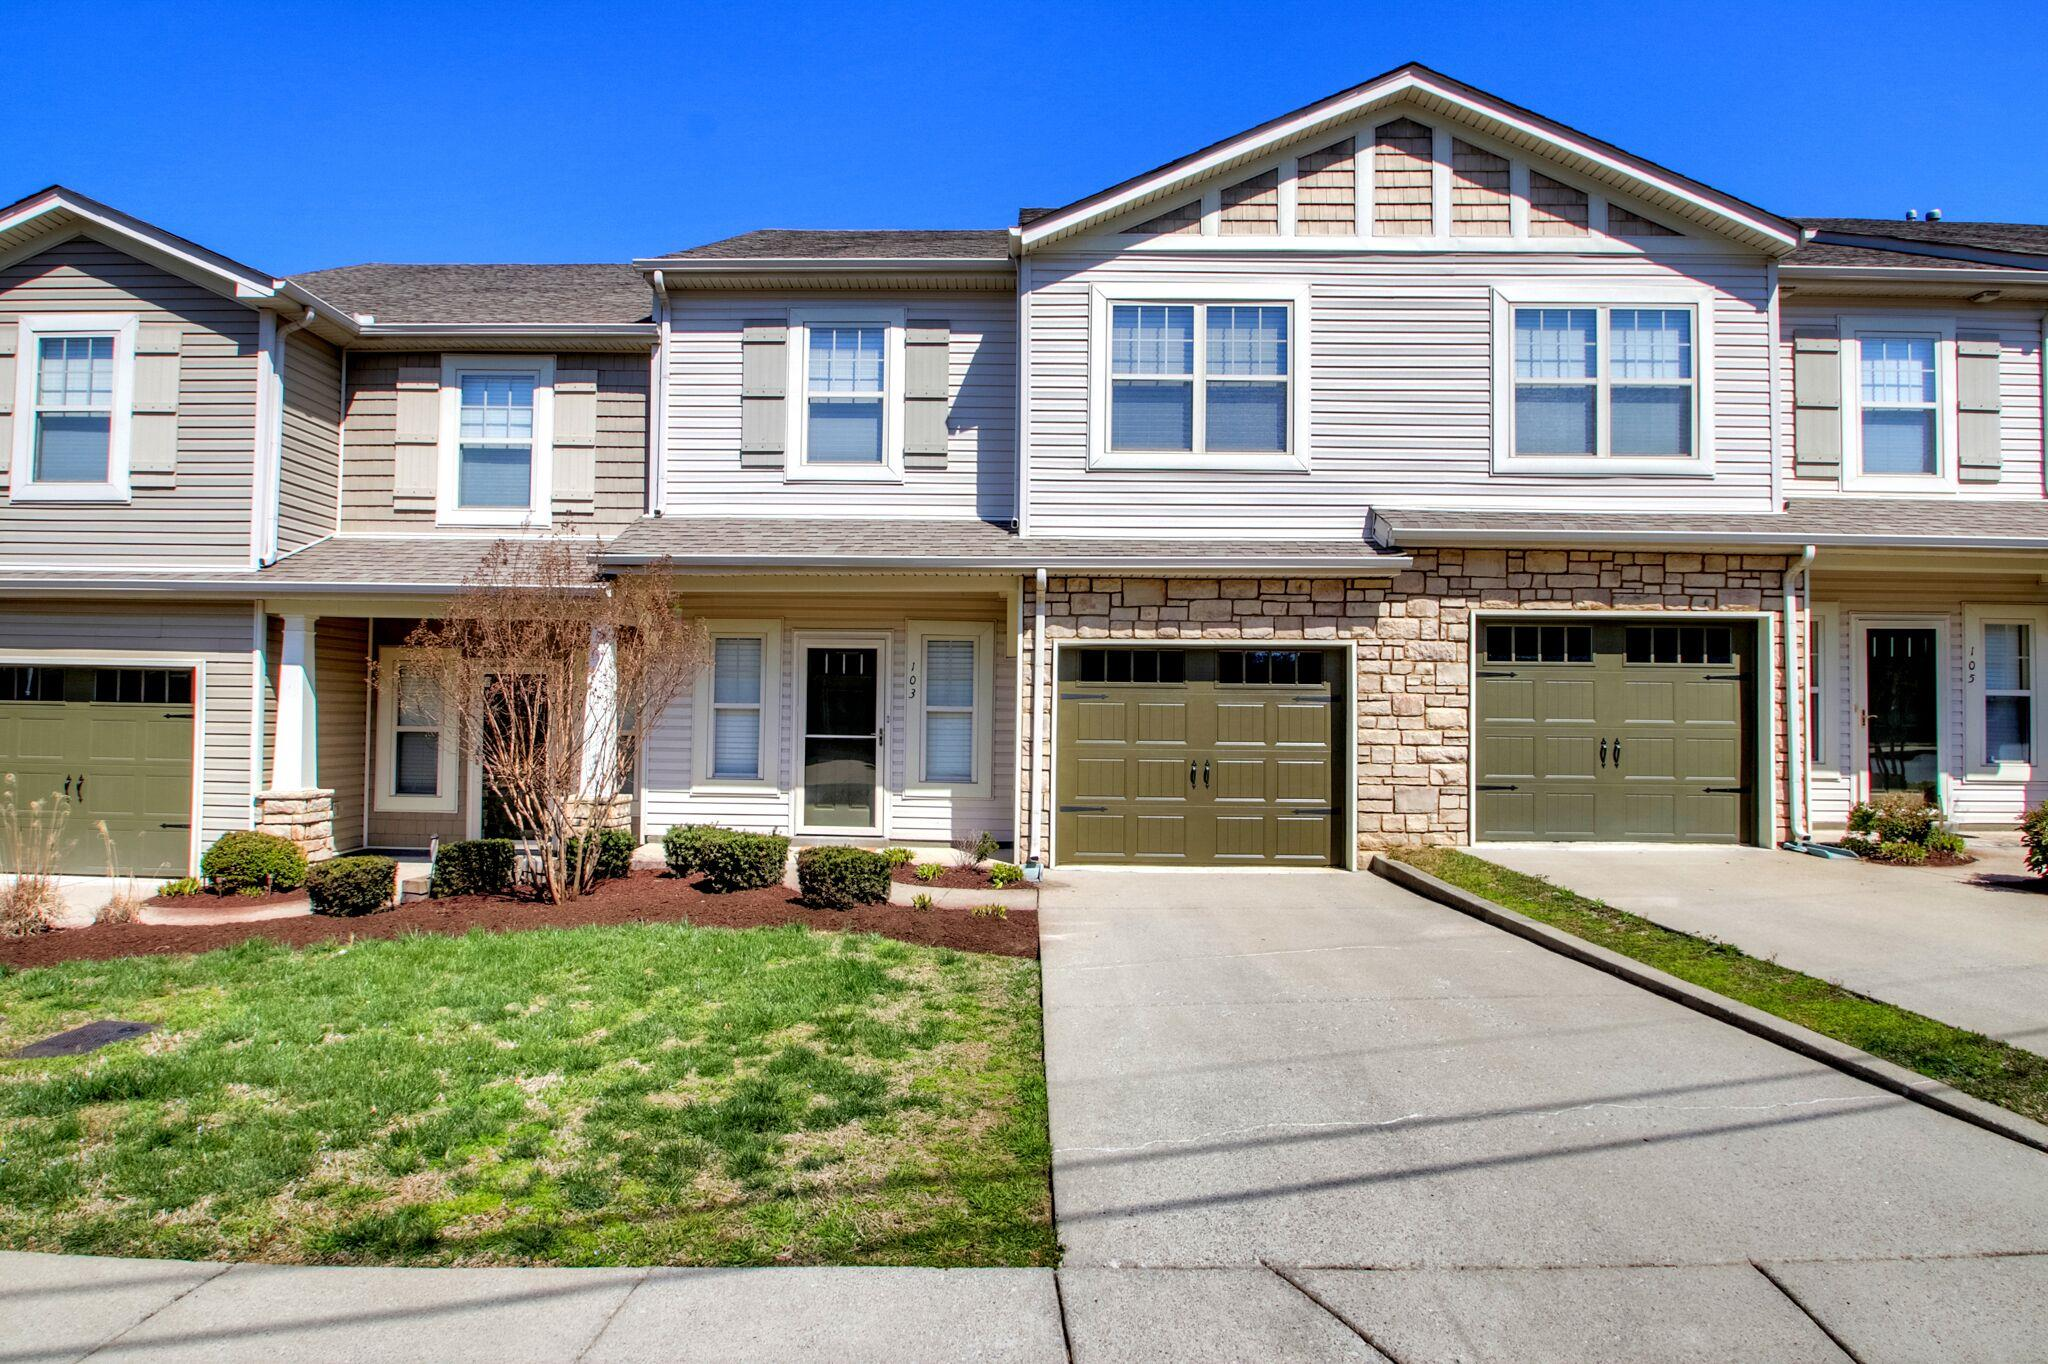 735 Tulip Grove Rd Apt 103, Hermitage in Davidson County County, TN 37076 Home for Sale